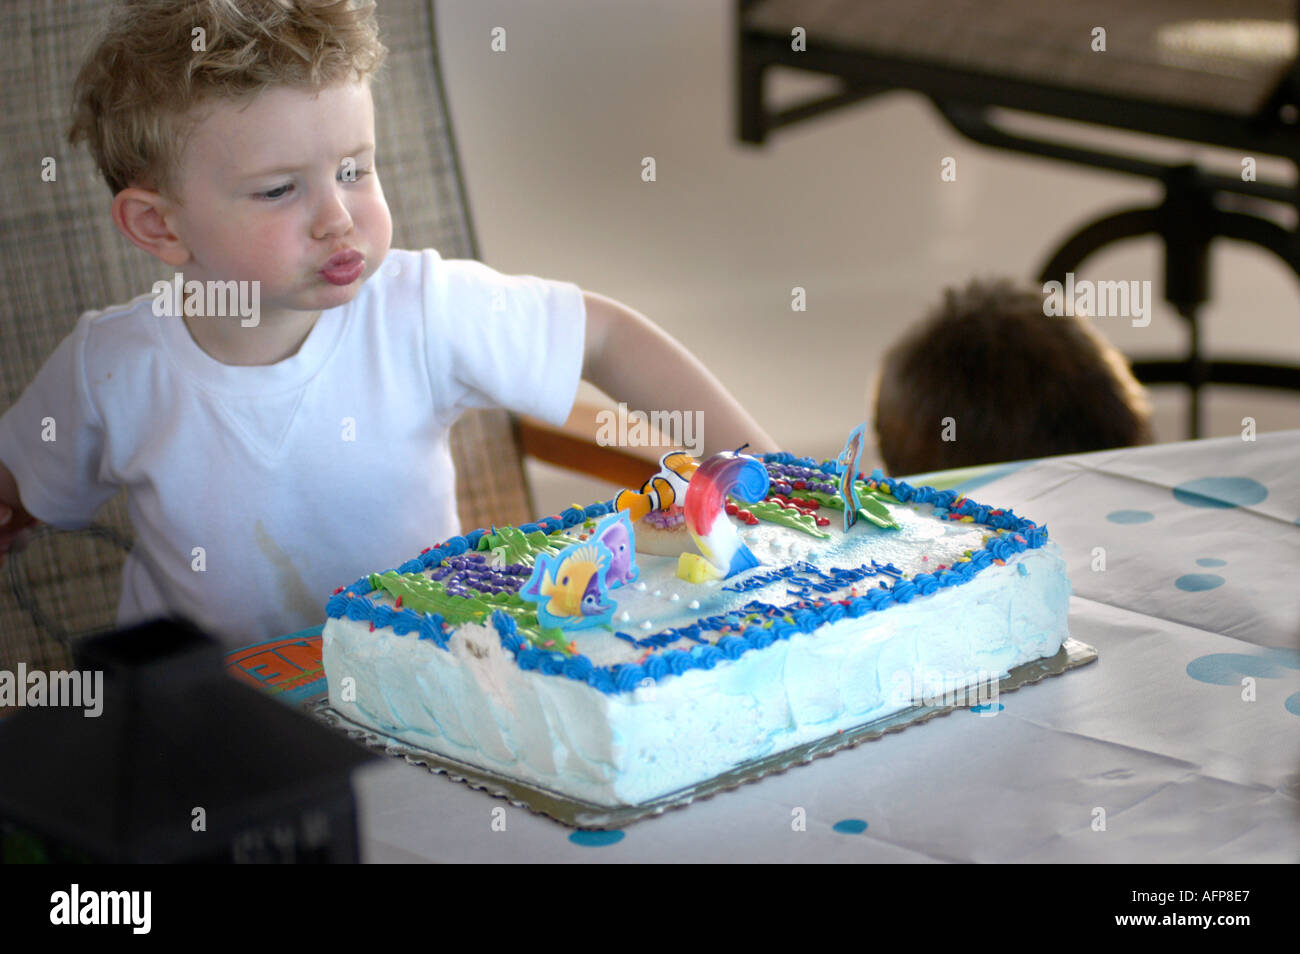 Child Having His 2nd Birthday Party A Boy